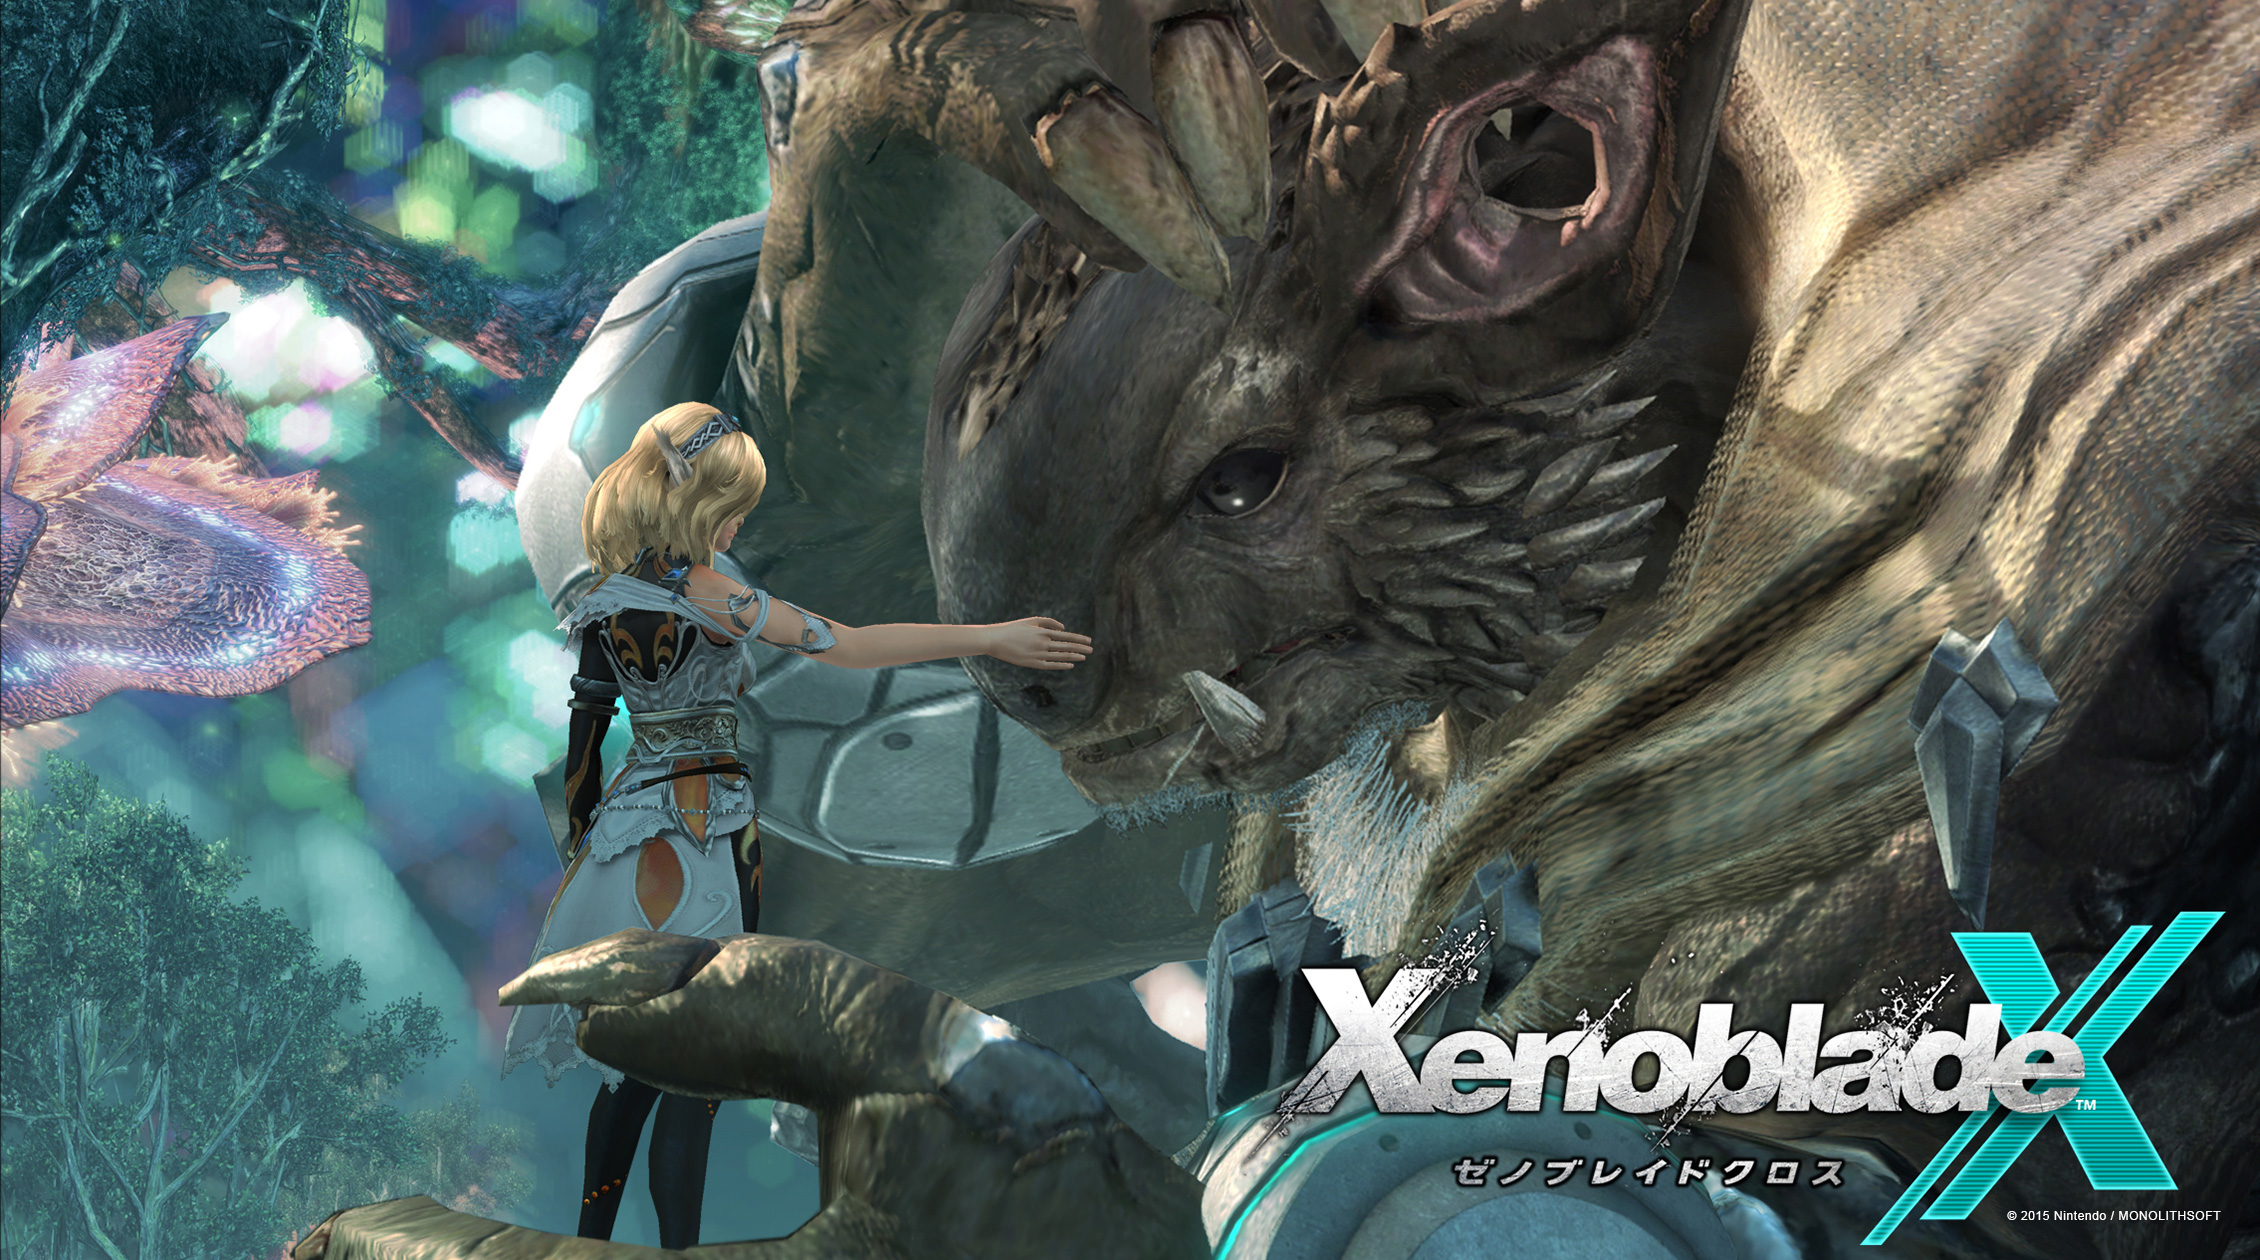 Xenoblade Chronicles X Hd Wallpaper Background Image 2260x1260